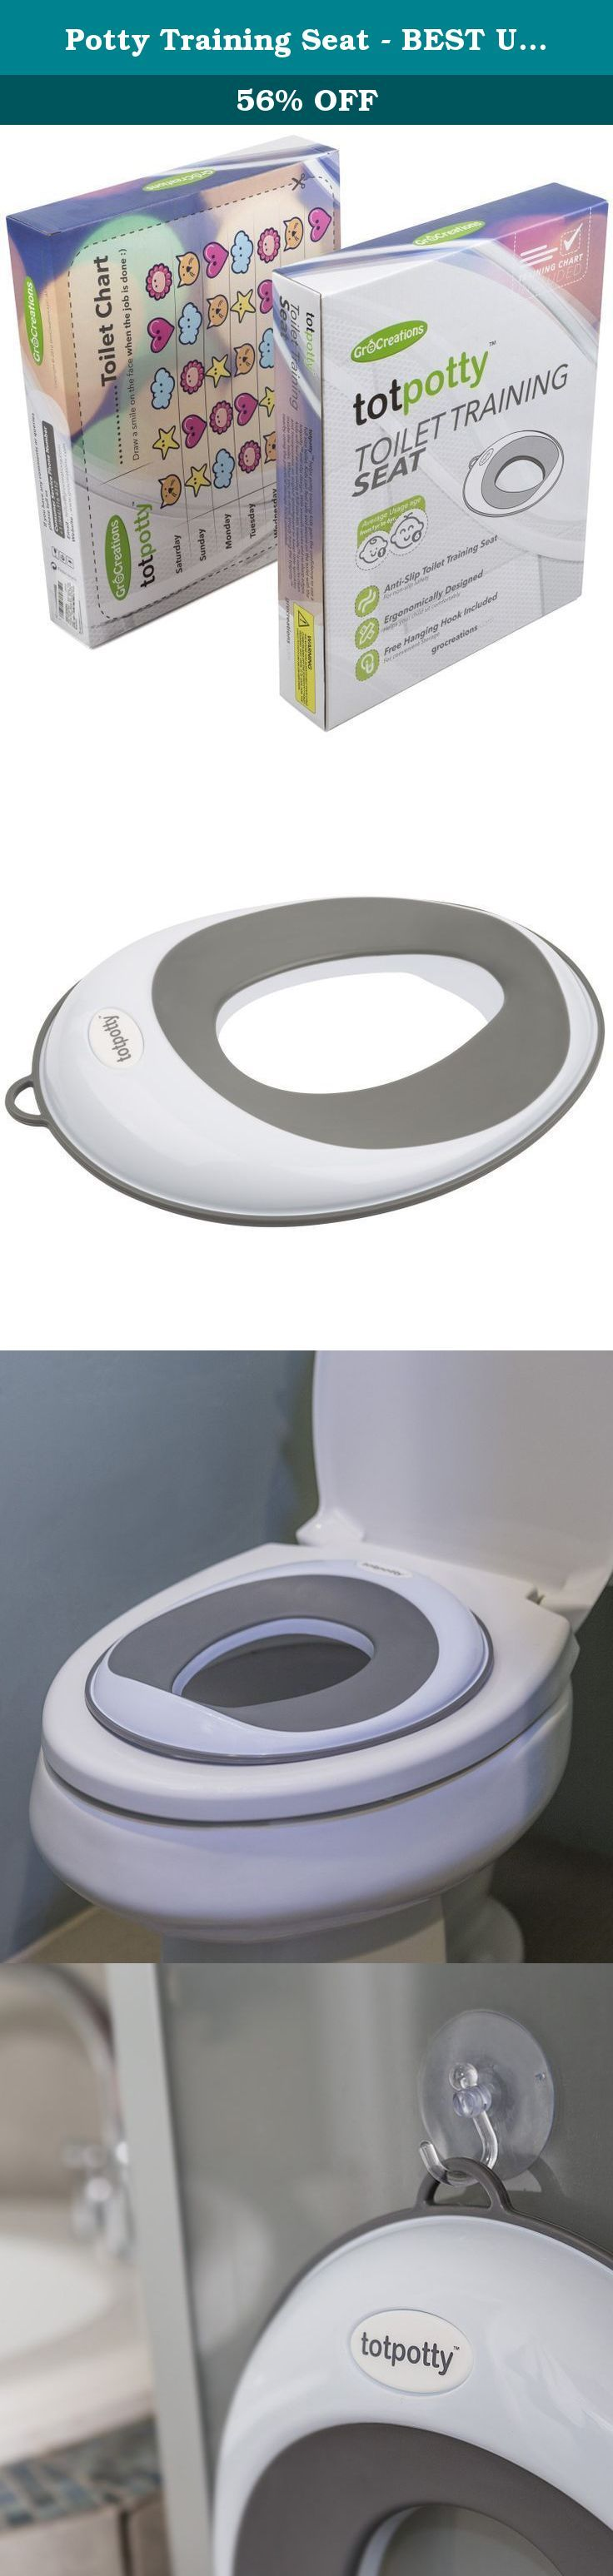 Potty Training Seat - BEST Unisex Toilet Training Seat | Secure Anti-Slip Ring toilet topper | + FREE GIFTS Hanging Hook & Suction Cup - PLUS Potty Training Reward Chart. POTTY TRAIN WITH CONFIDENCE! When you purchase GroCreations totpotty™ Toilet Training Seat - not only do you get the best potty training seat on the market, you also get our amazing customer service experience. The totpotty™ is the accessory for your potty training toddler. This stylish potty seat blends with your…